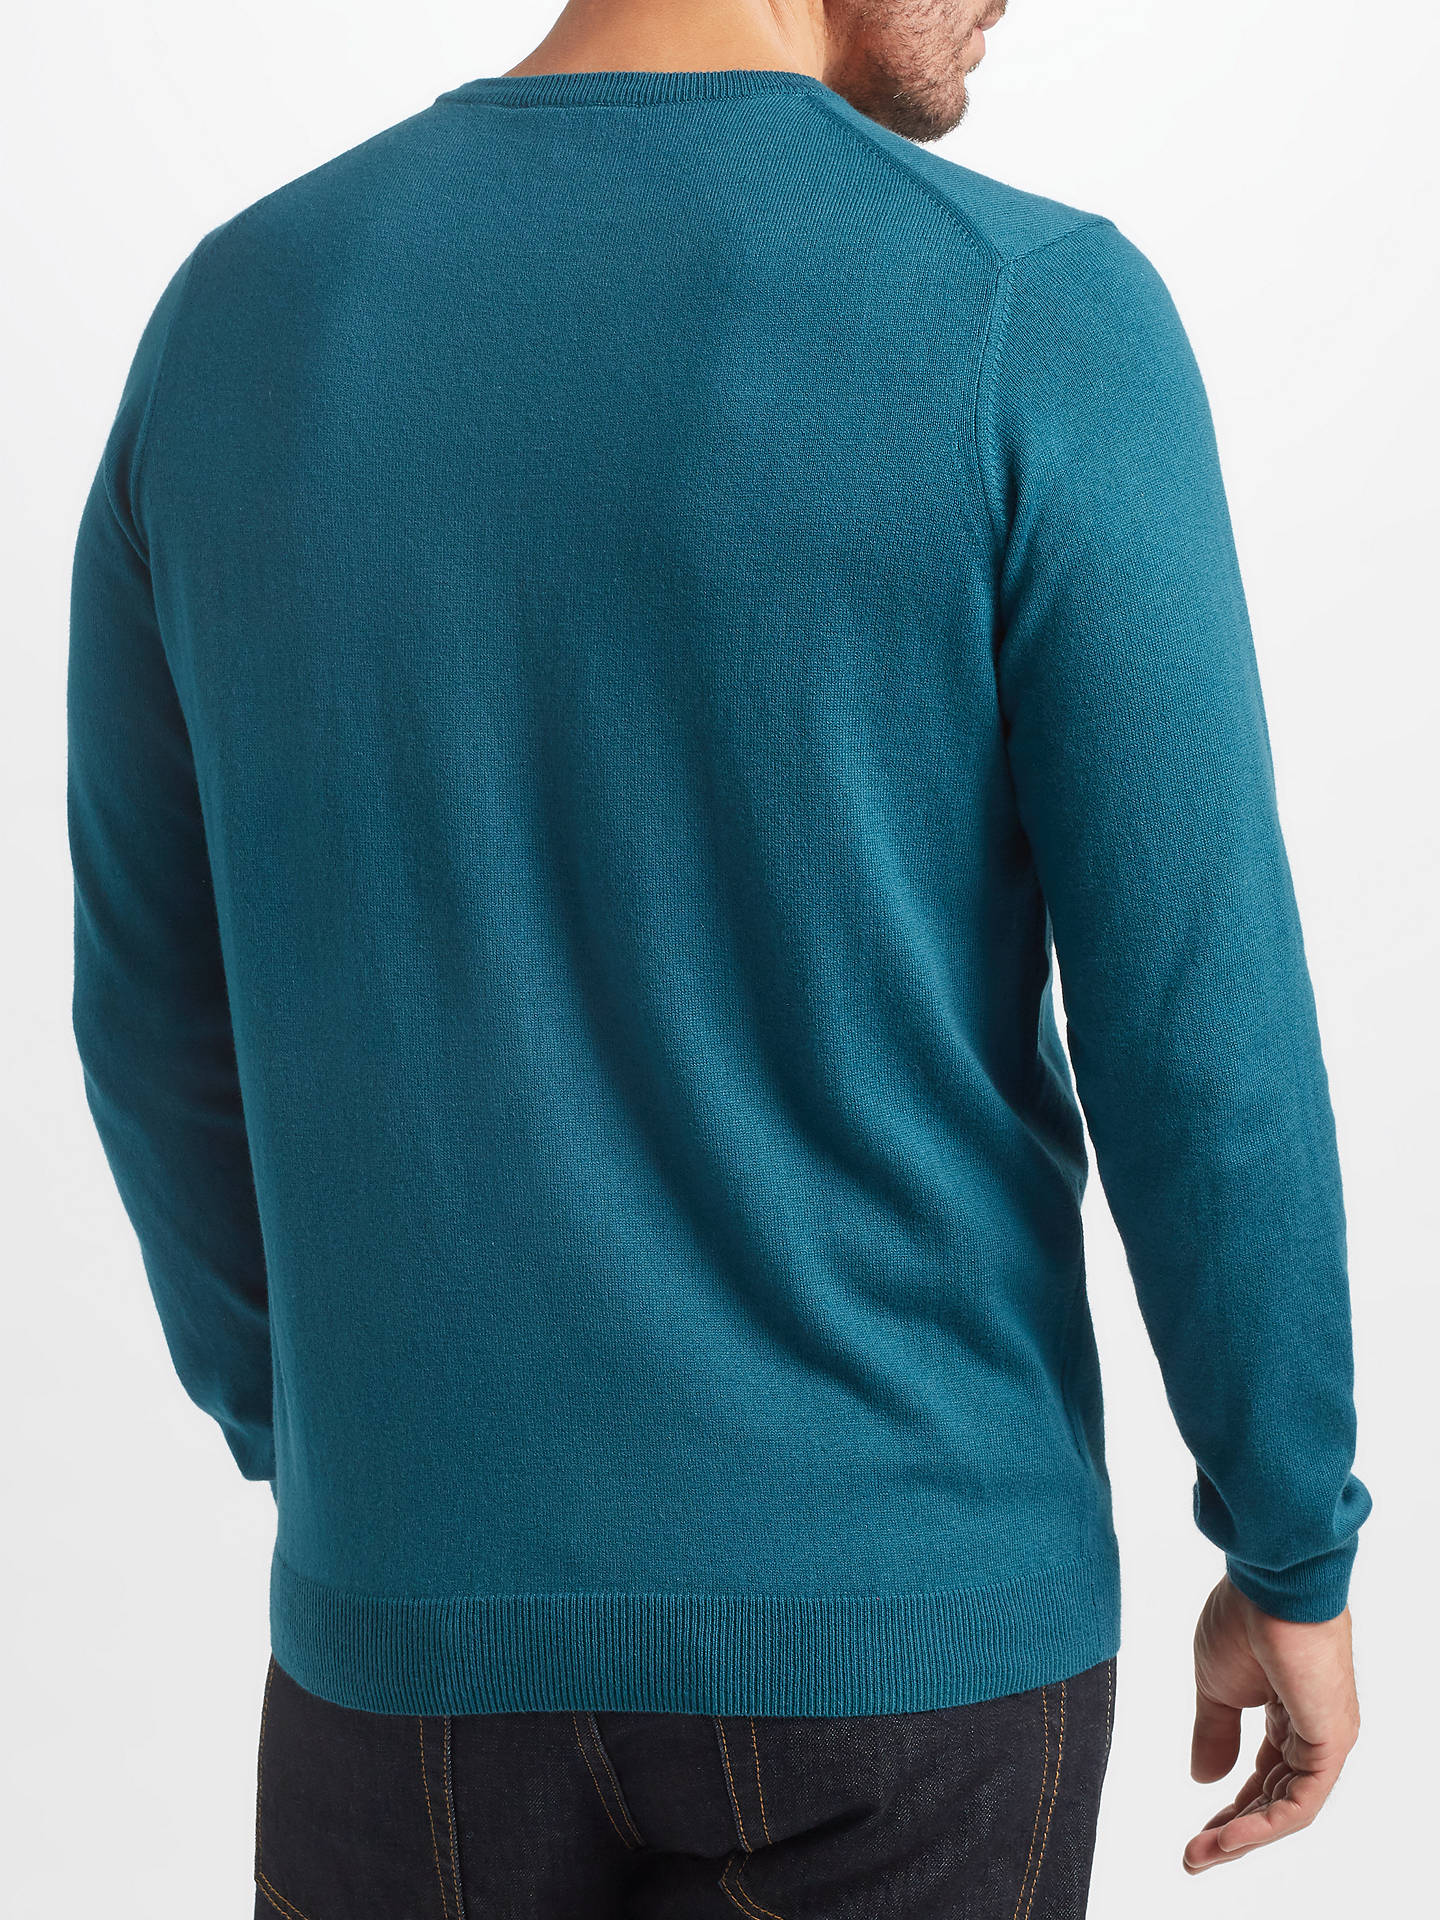 BuyJohn Lewis & Partners Cotton Cashmere Crew Neck Jumper, Teal, S Online at johnlewis.com